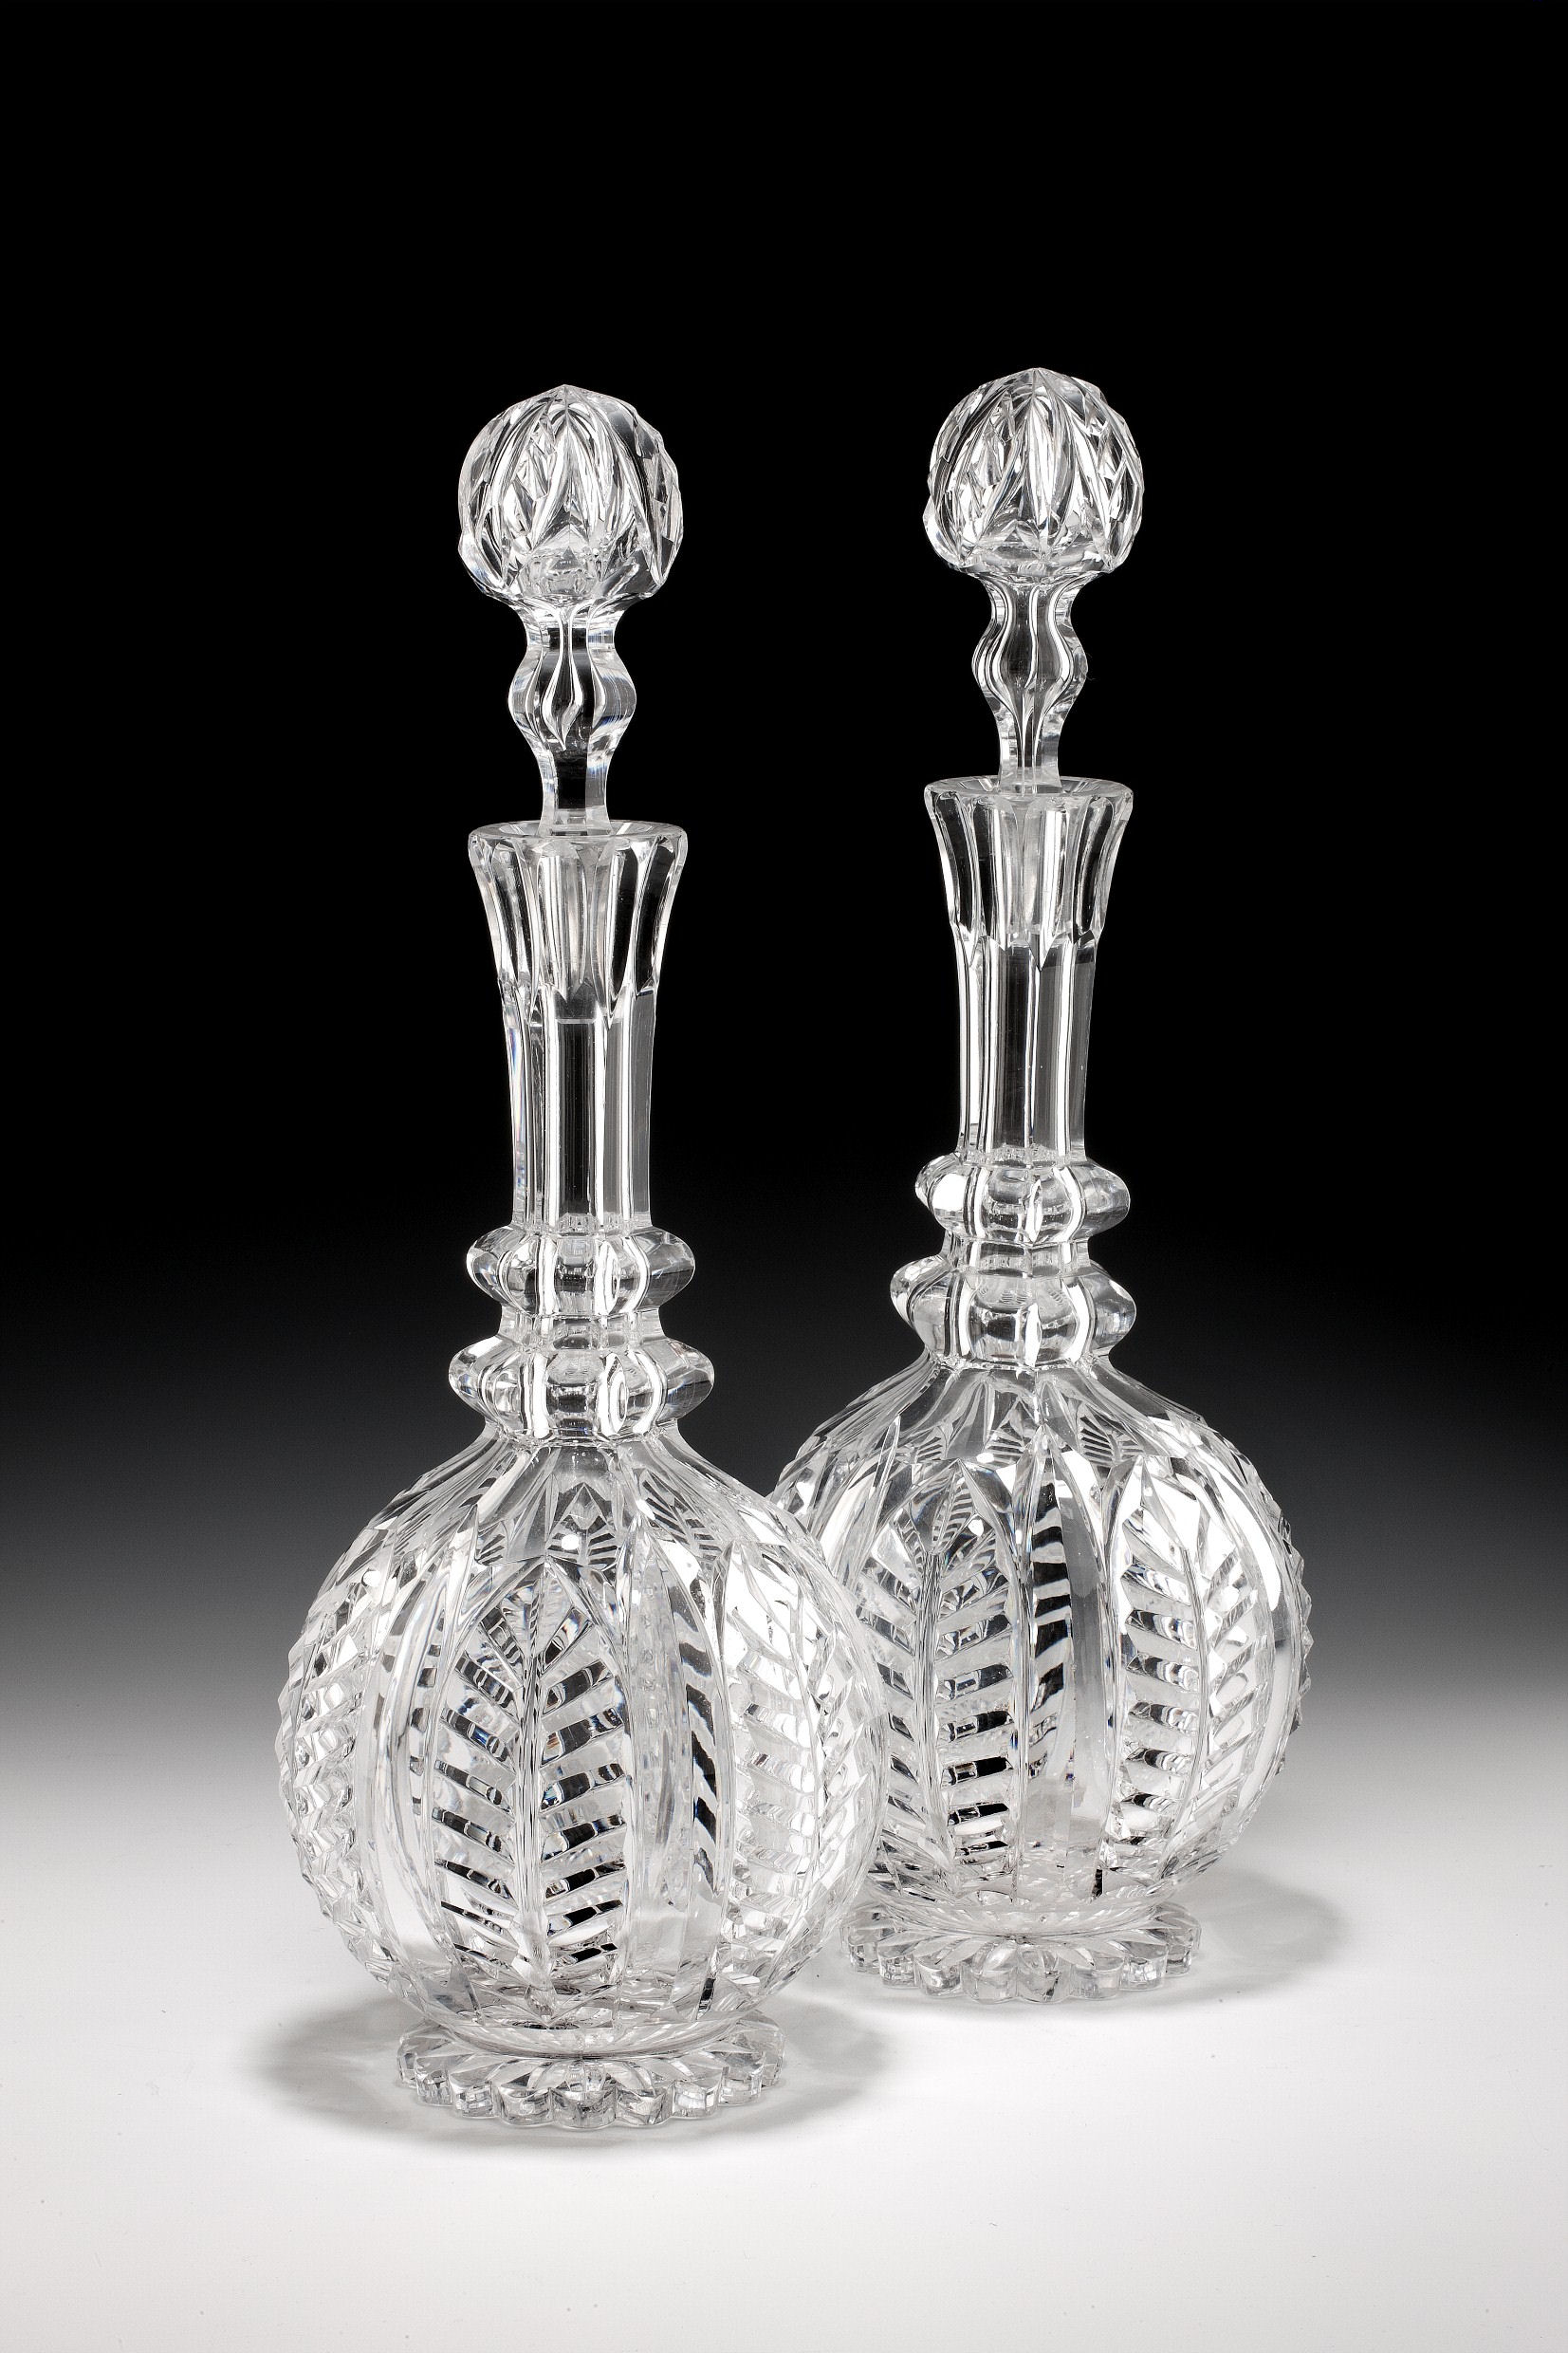 dating antique decanters Estimating the age of antique bottles can sometimes be a difficult task even for the experienced collector however, by following some basic guidelines anyone can.